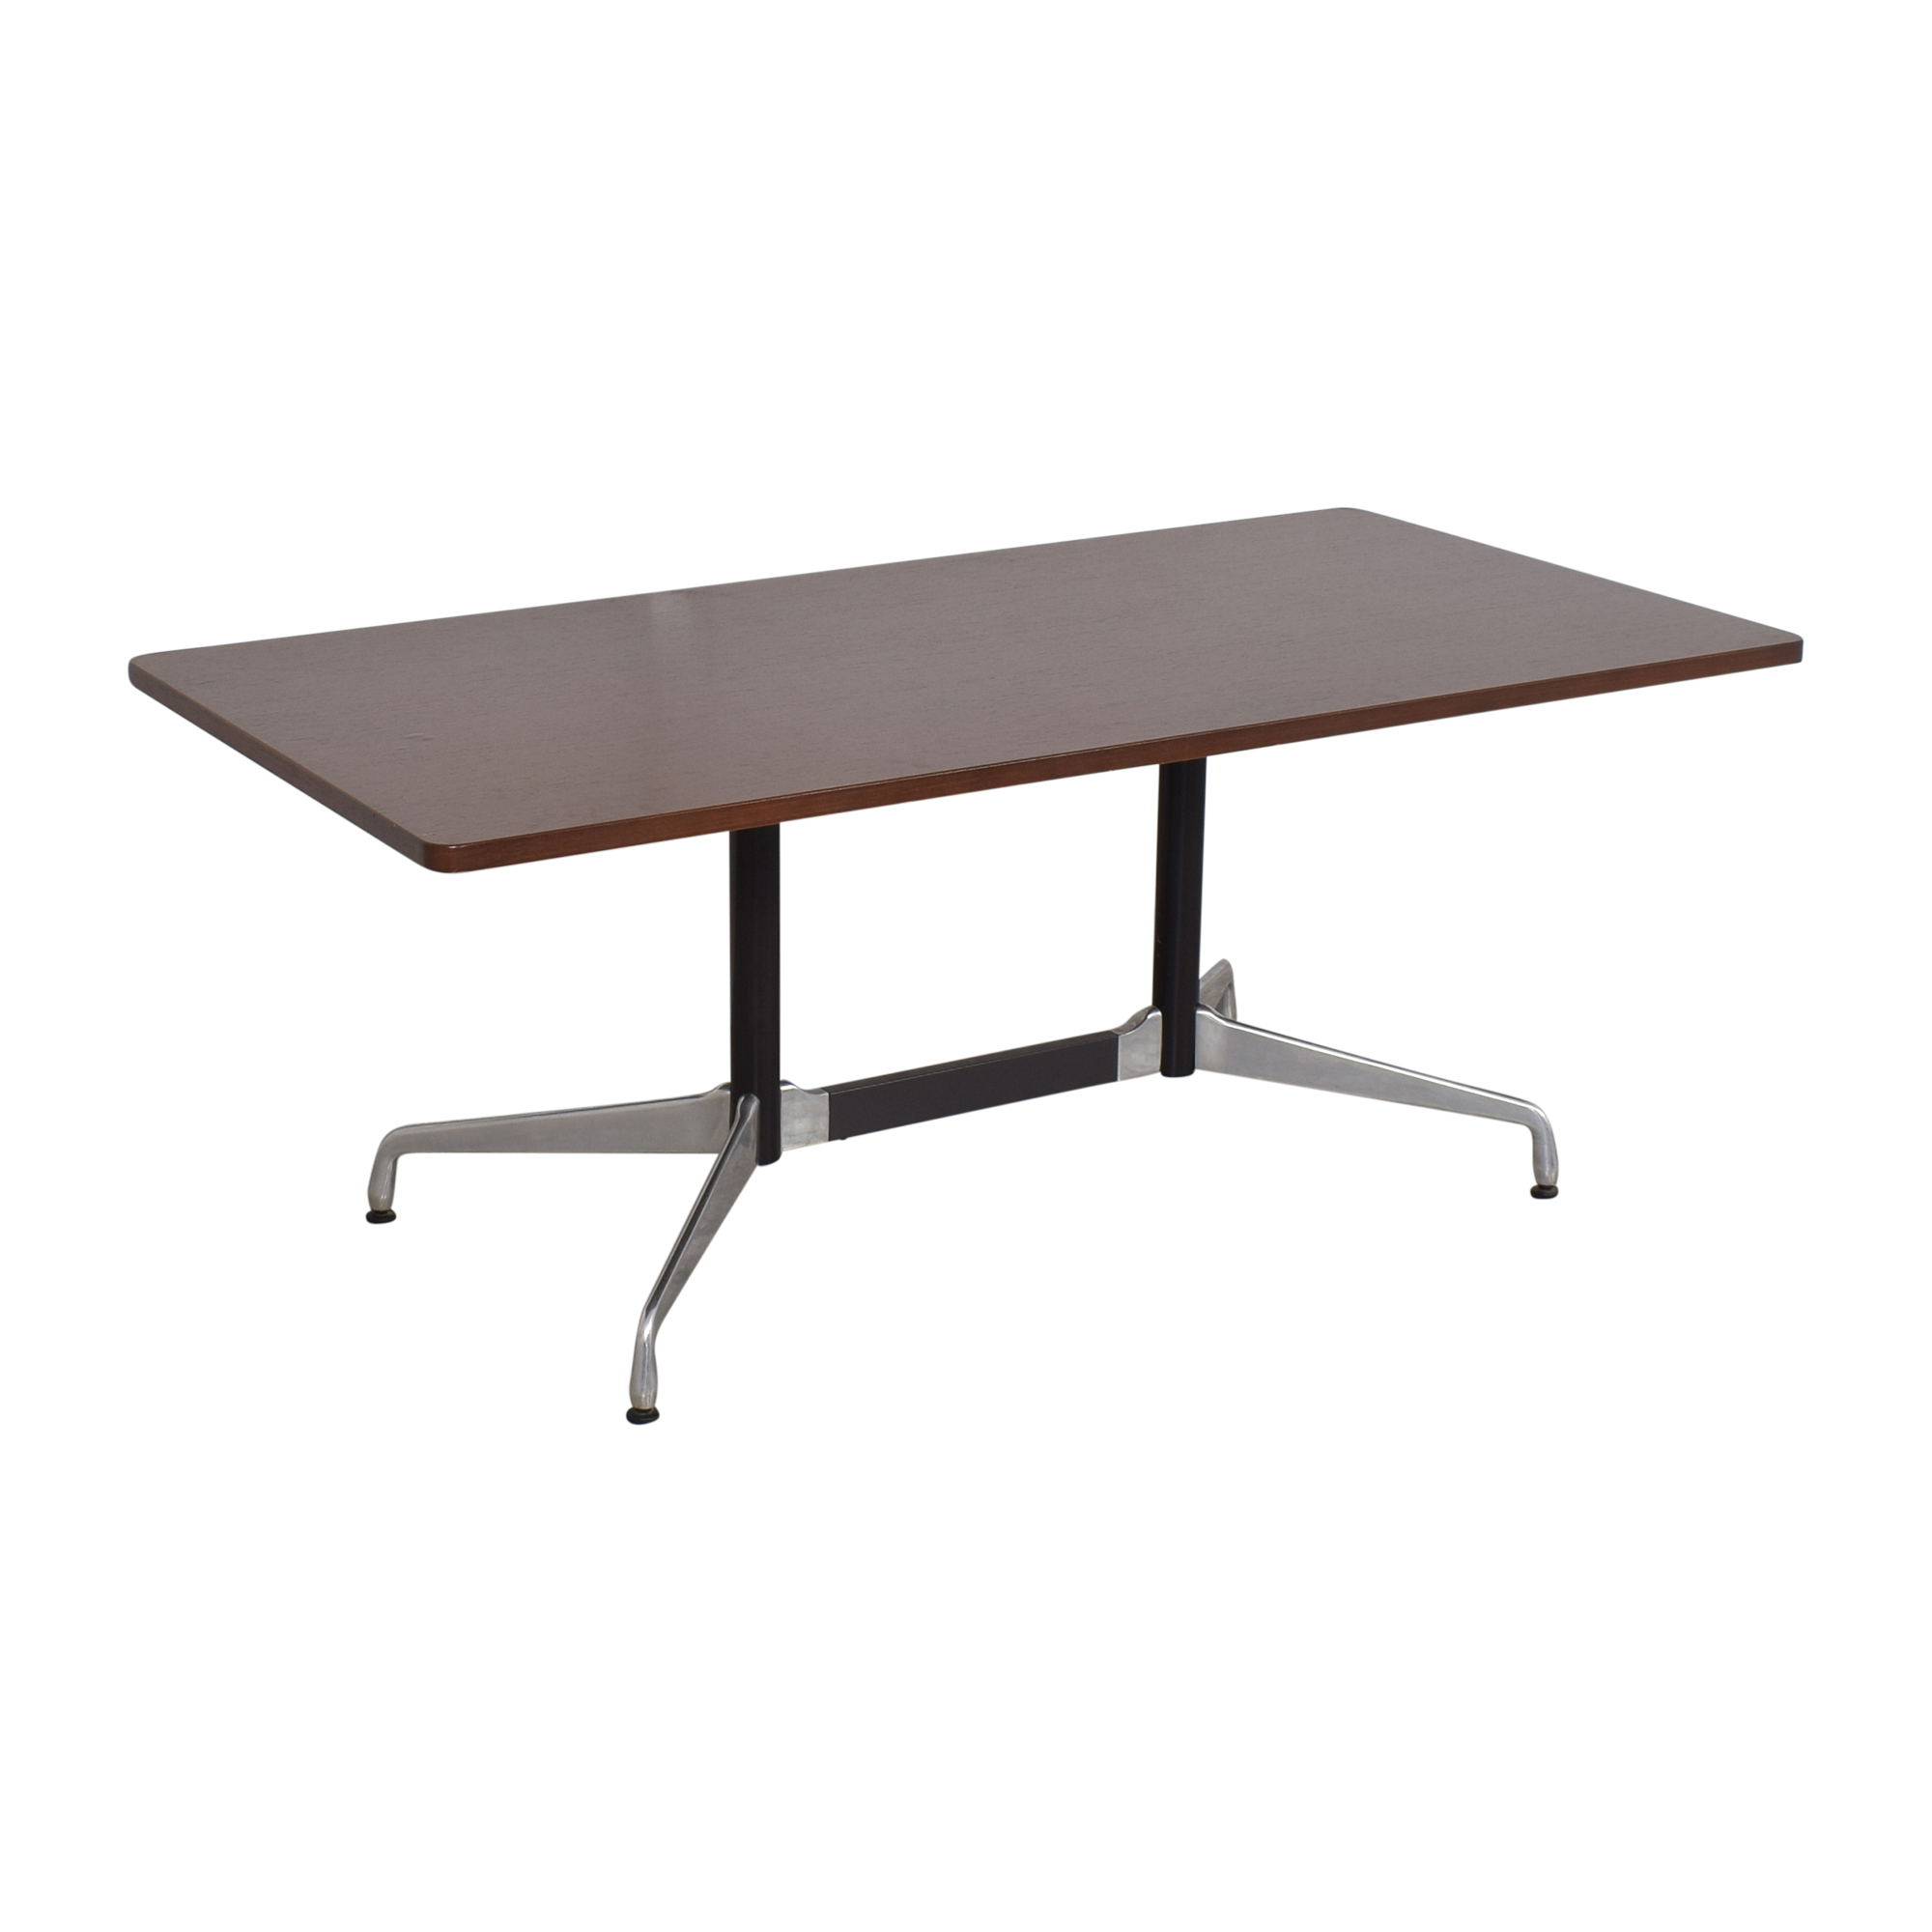 Herman Miller Herman Millier Eames Table with Rectangular Top and Segmented Base second hand